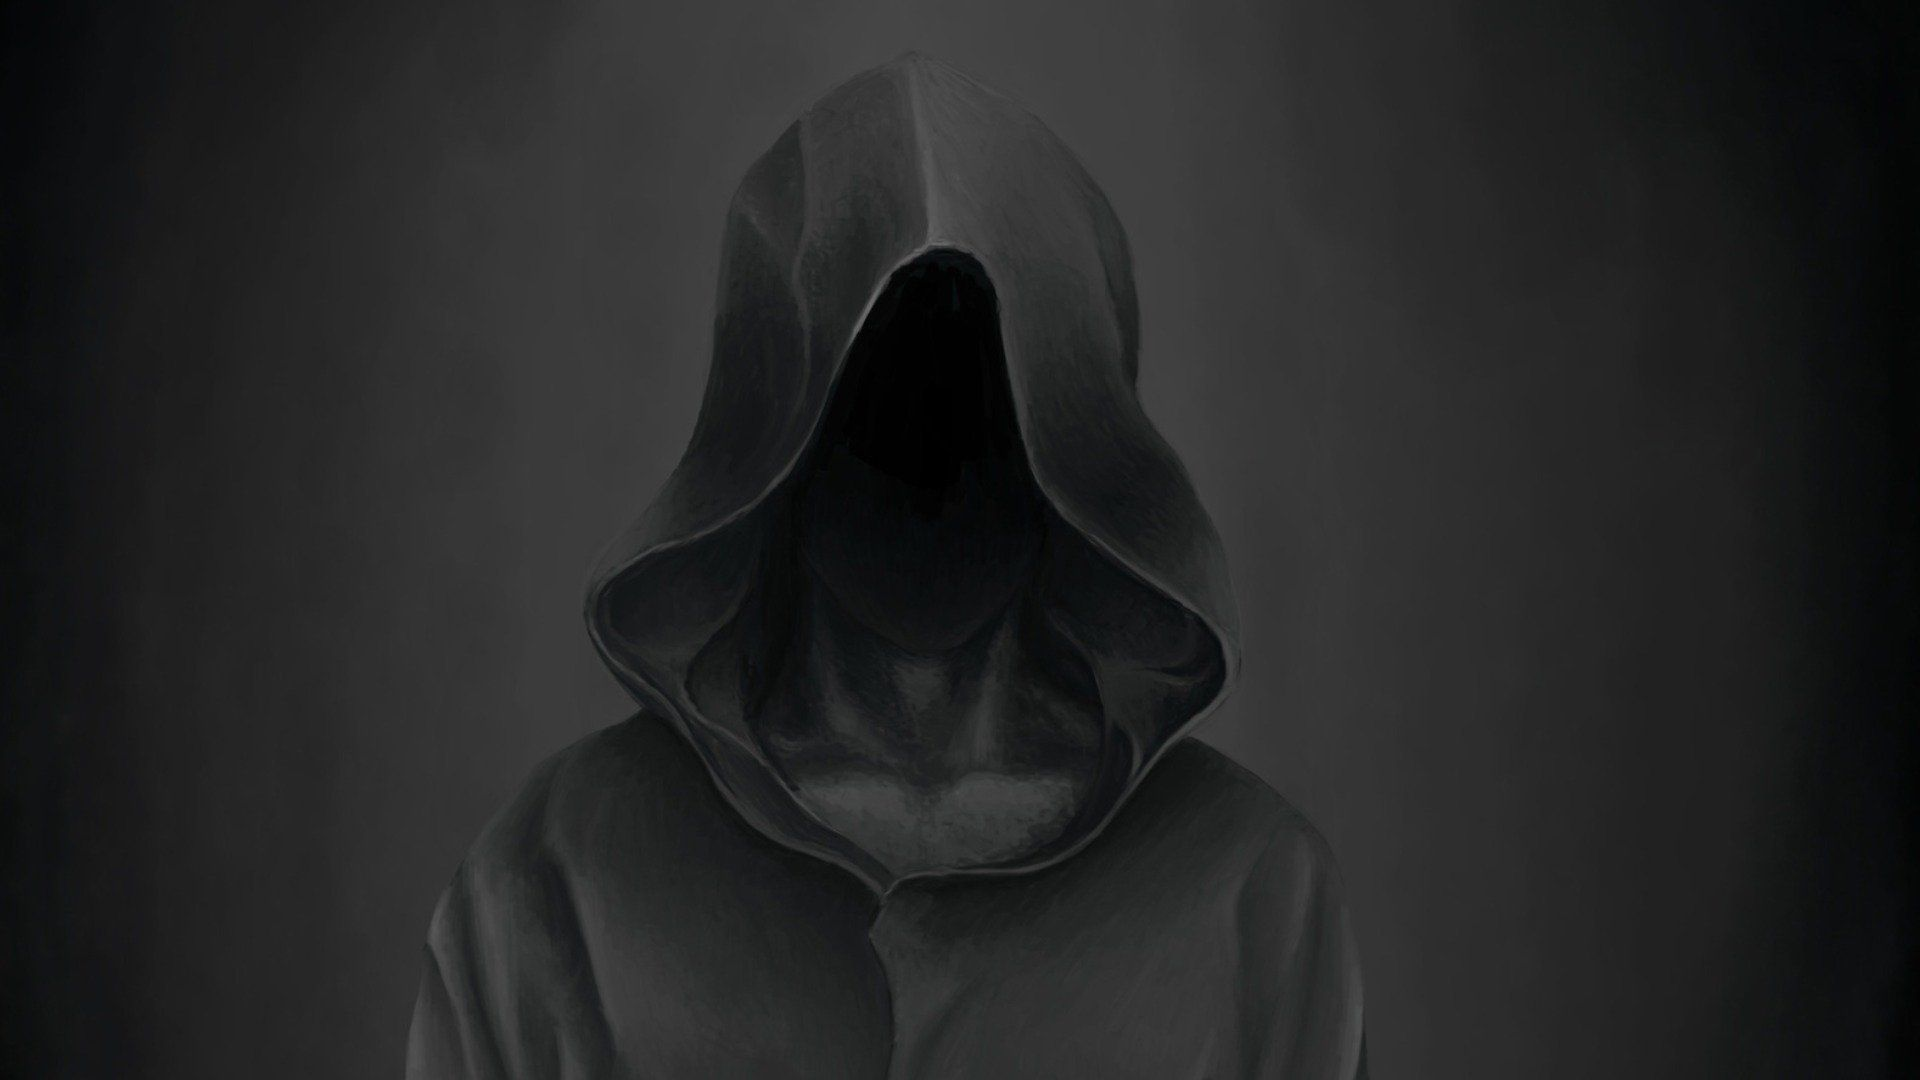 Hood full hd wallpaper